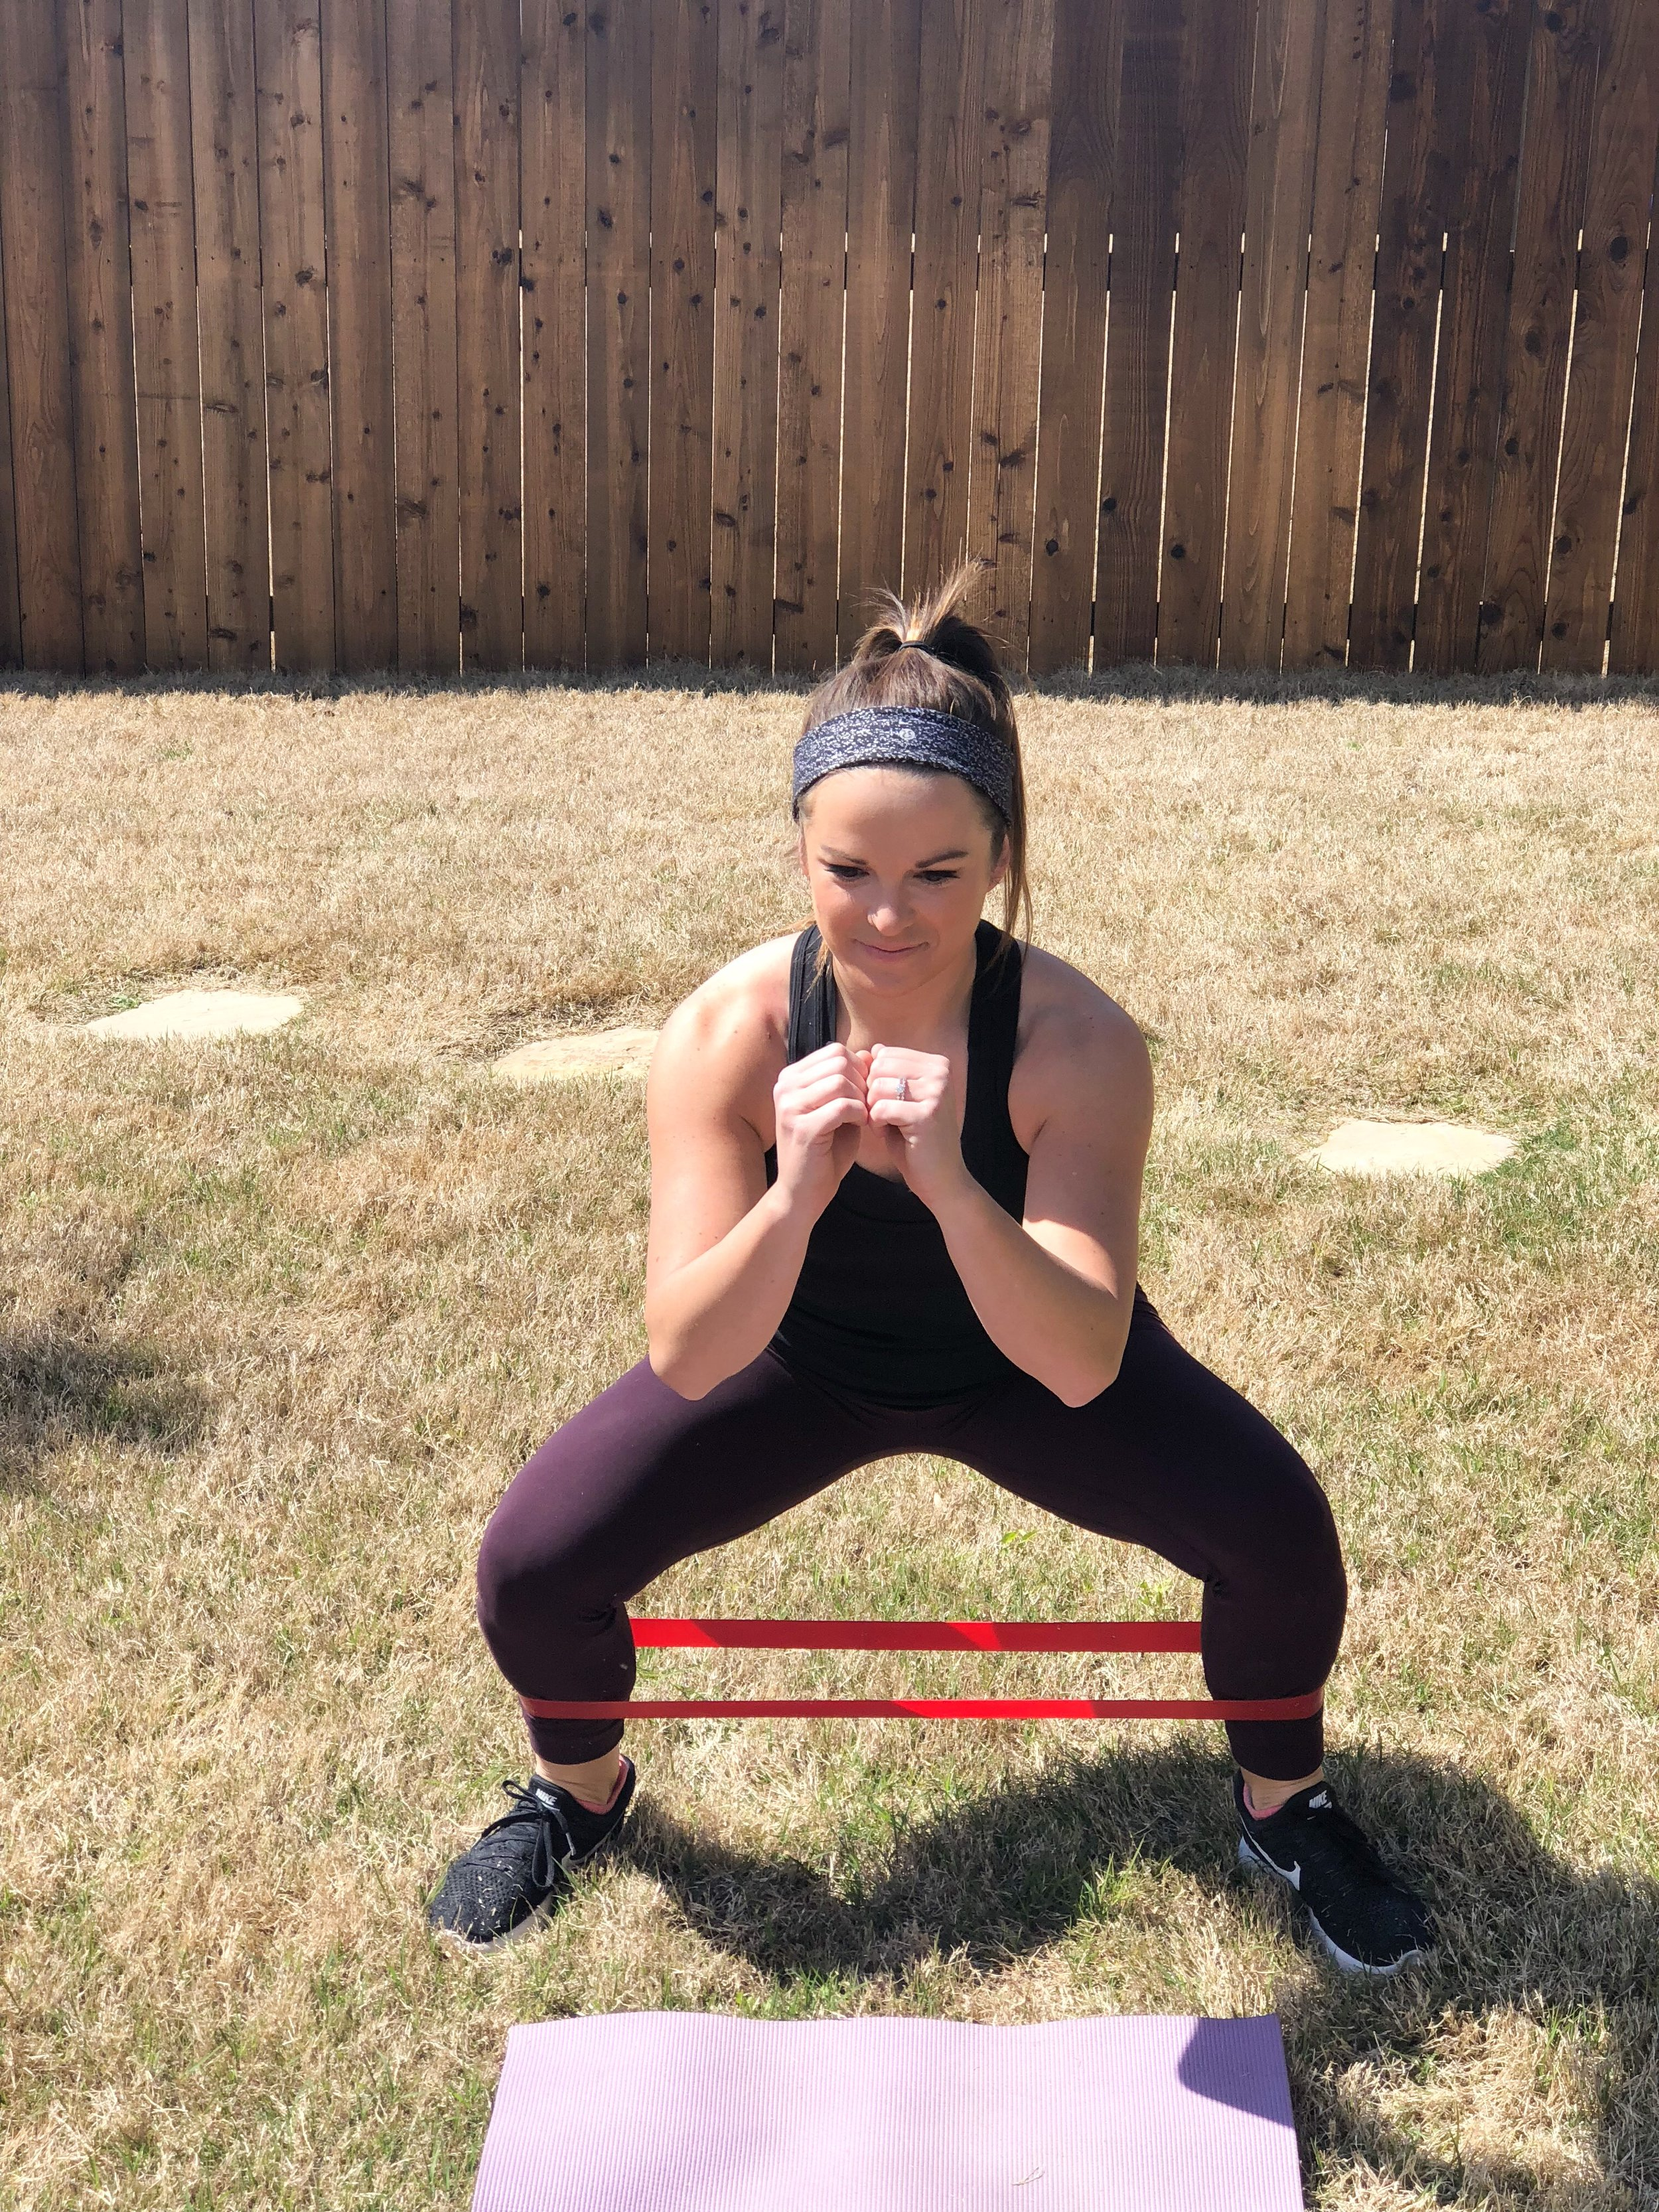 shoot those hips back, and keep your weight in your heels and the balls of your feet and off of your toes